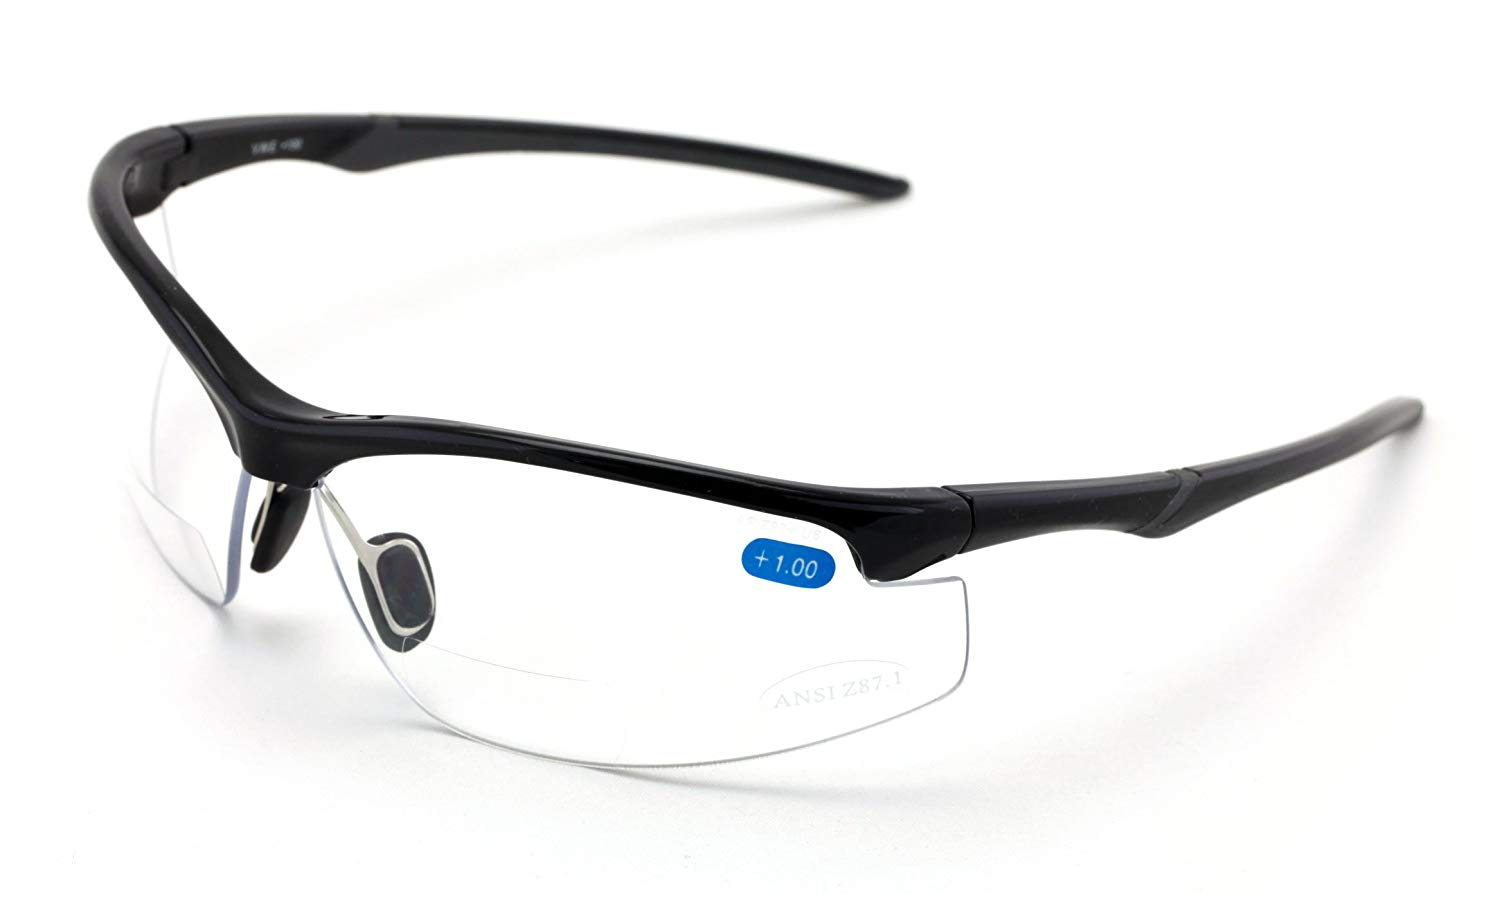 d172f4723424 Get Quotations · Bifocal High Performance Sport Protective Safety Glasses  Bi-focal - Clear Lens Reader Reading Glasses